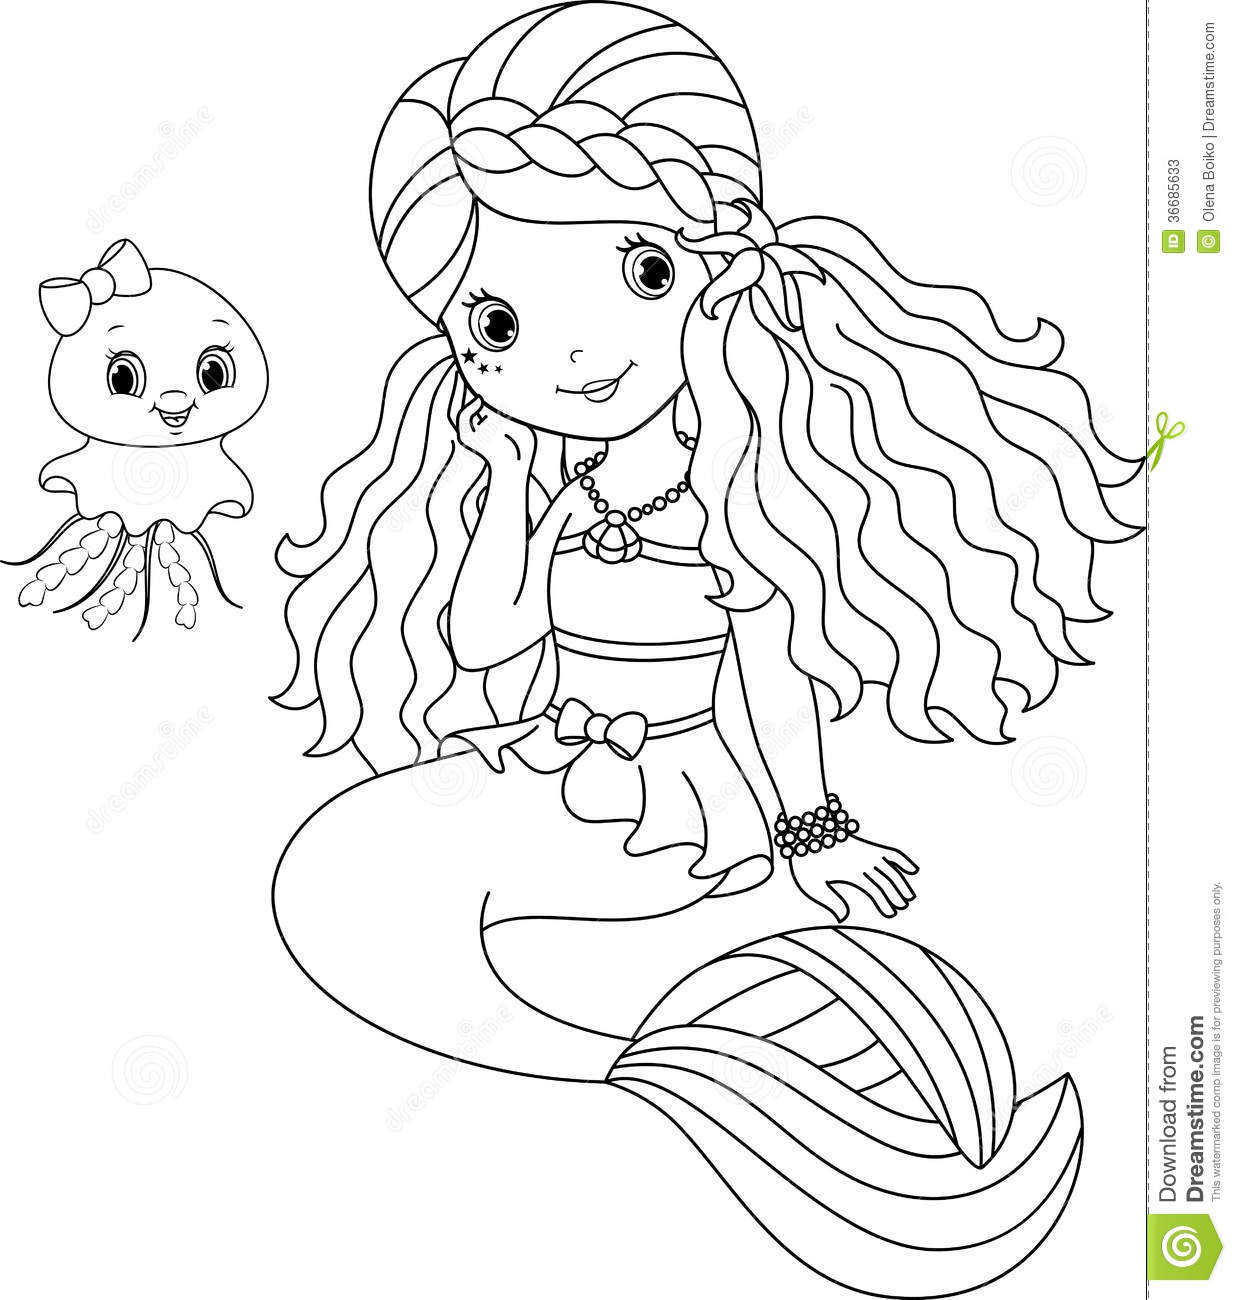 Pin Cute Jellyfish Coloring Pages Cartoon On Pinterest